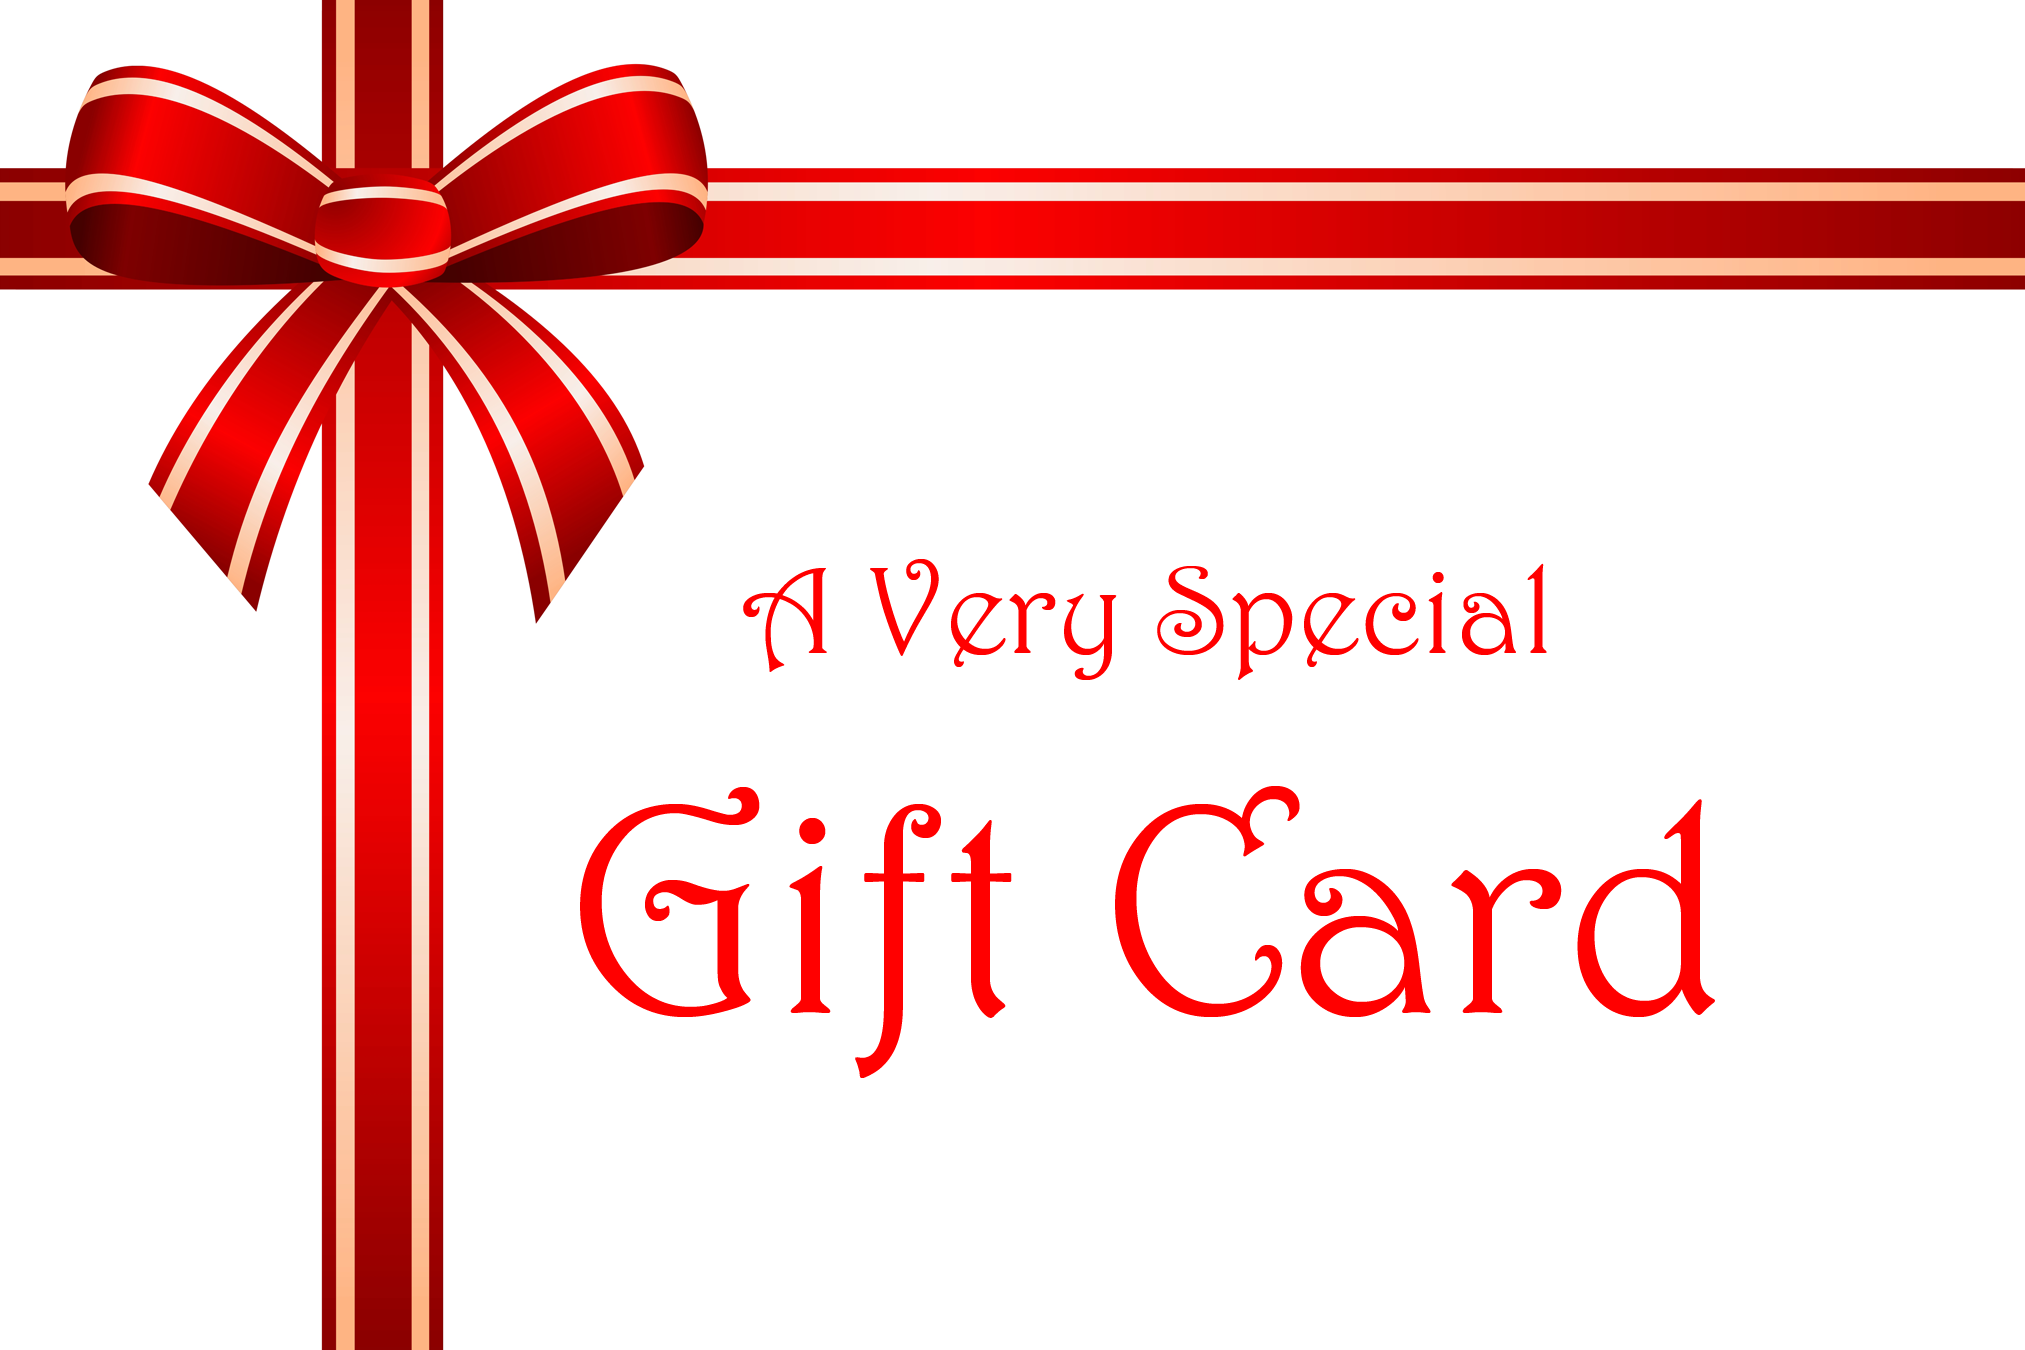 Gift Card Clipart - ClipArt Best